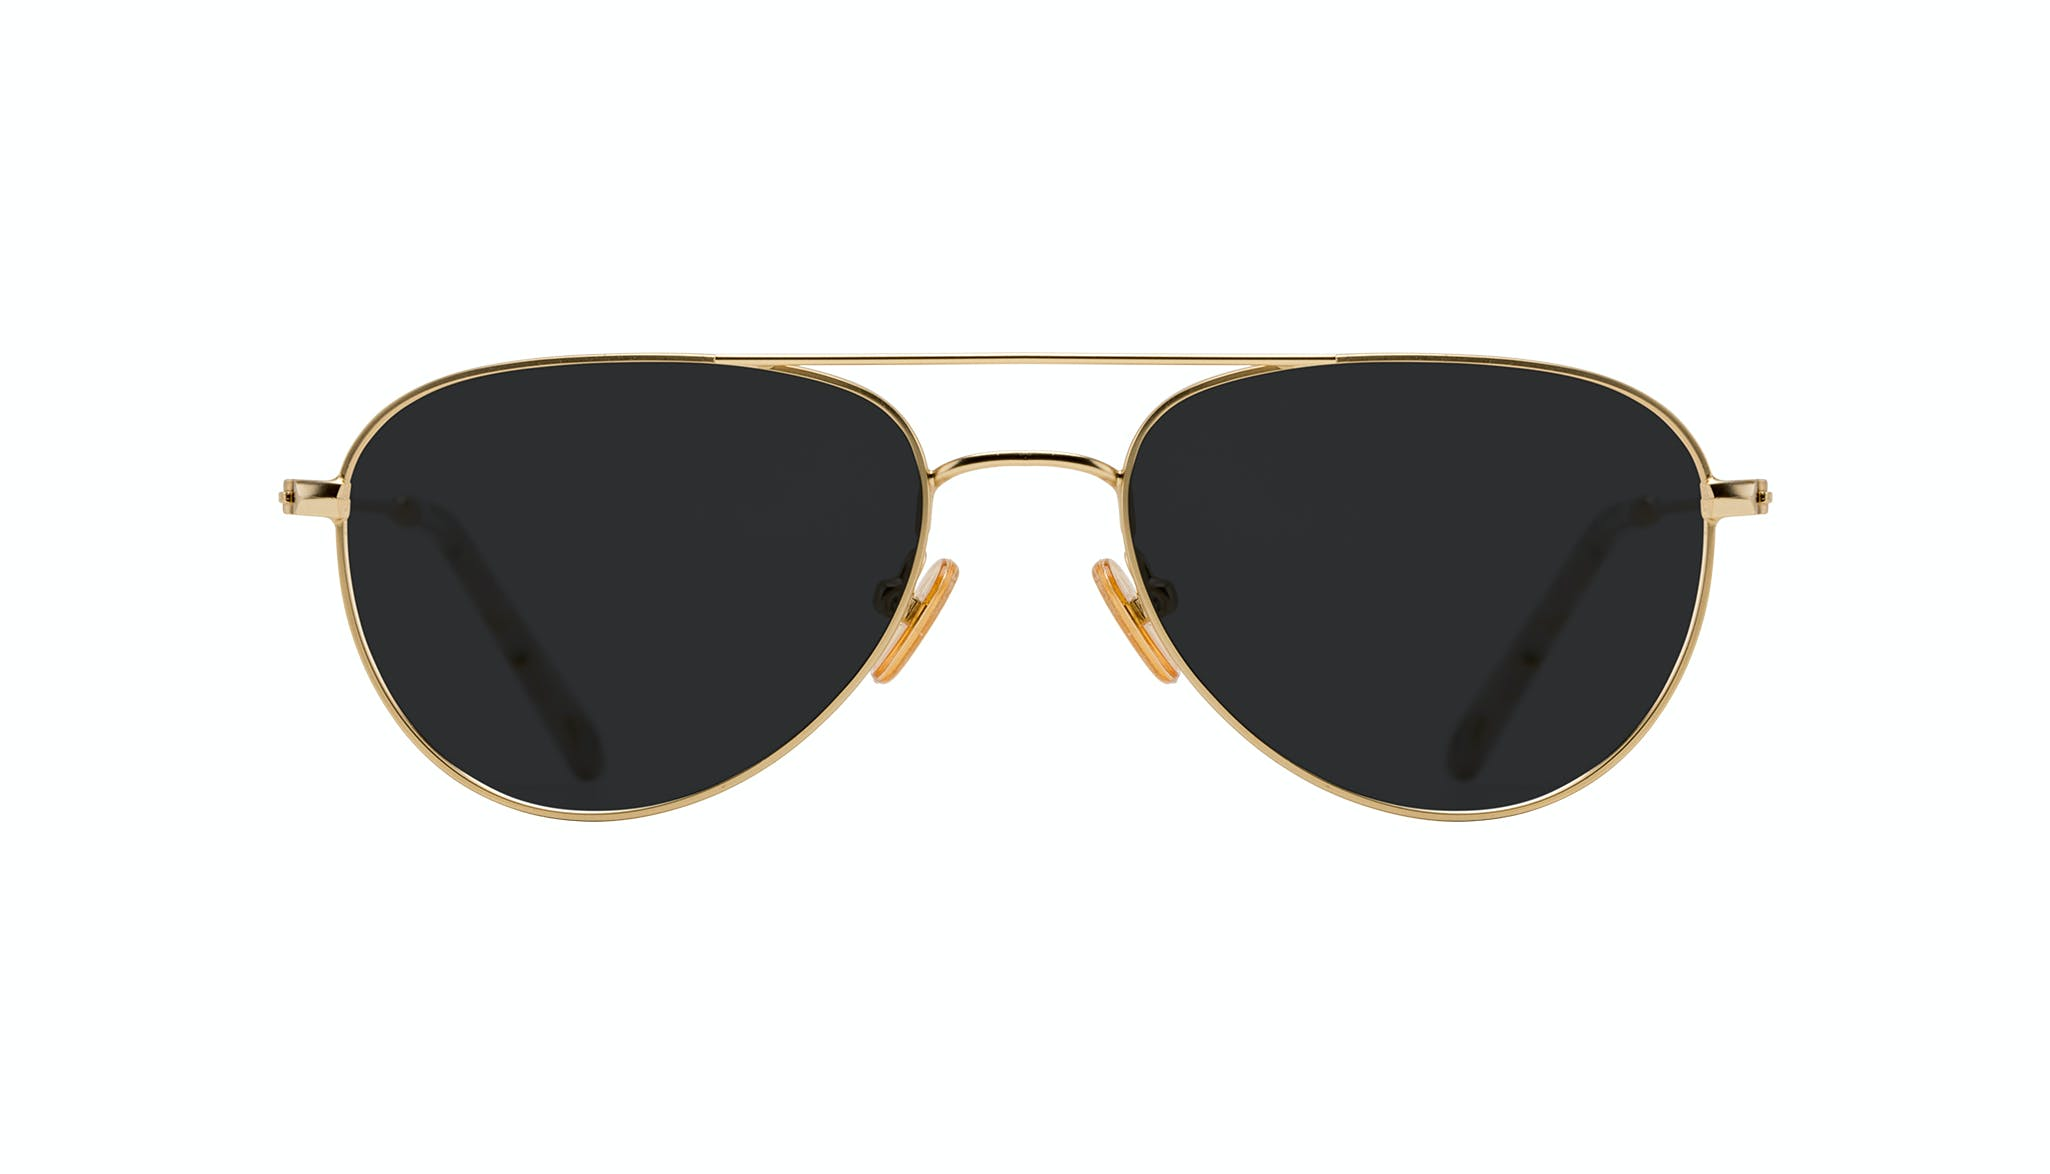 Affordable Fashion Glasses Aviator Sunglasses Women Figure Gold Front